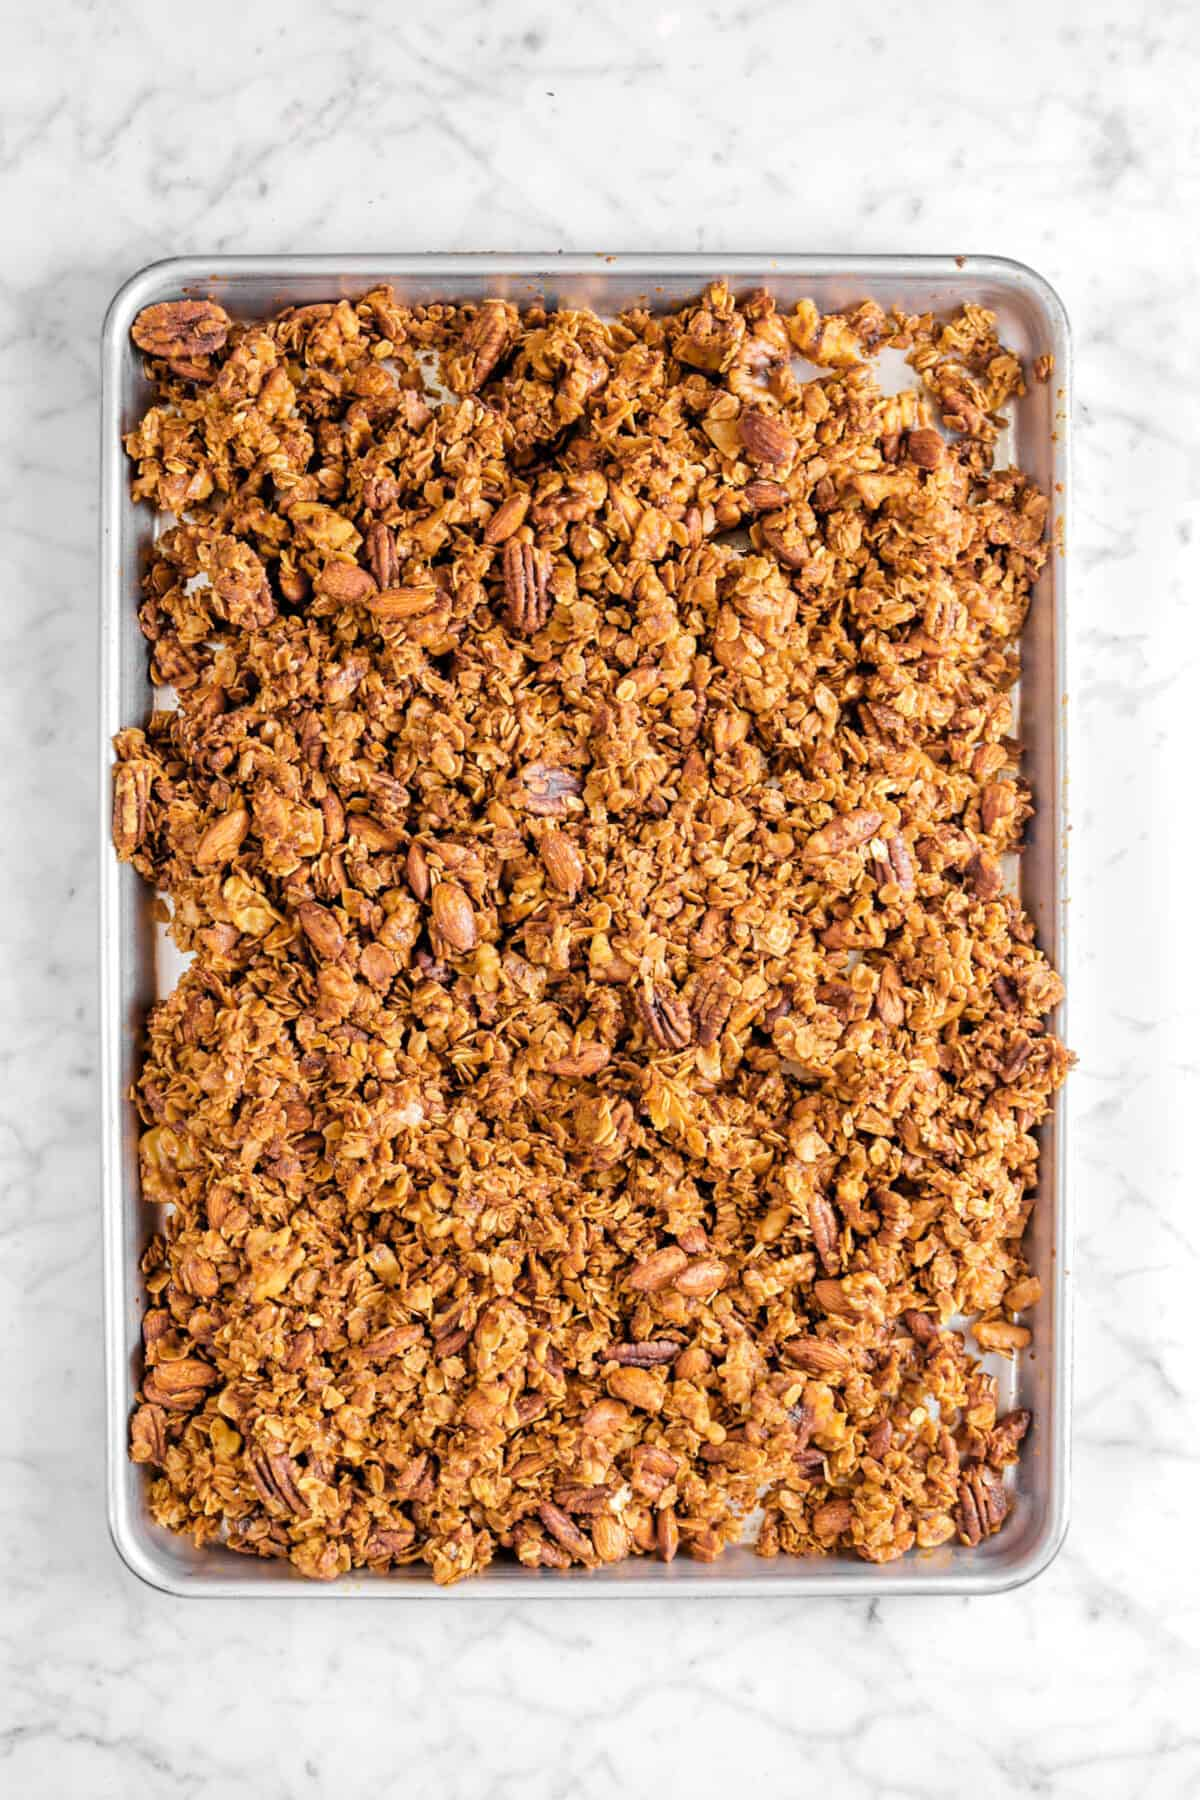 baked granola in sheet pan on marble counter